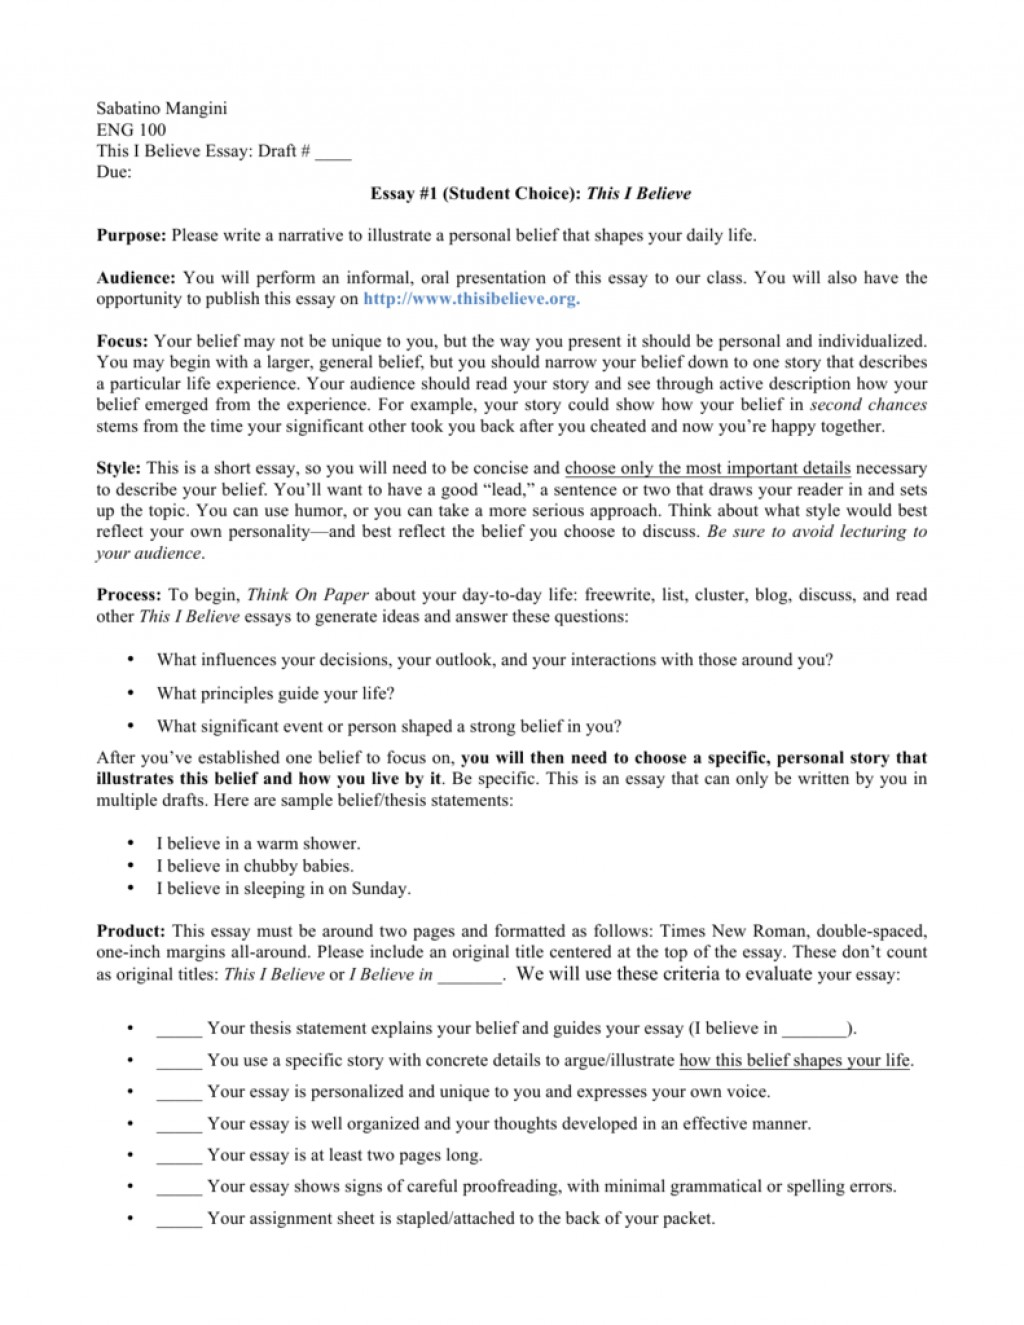 003 This I Believe Essays Essay Example 008807227 1 Dreaded By High School Students Npr Large